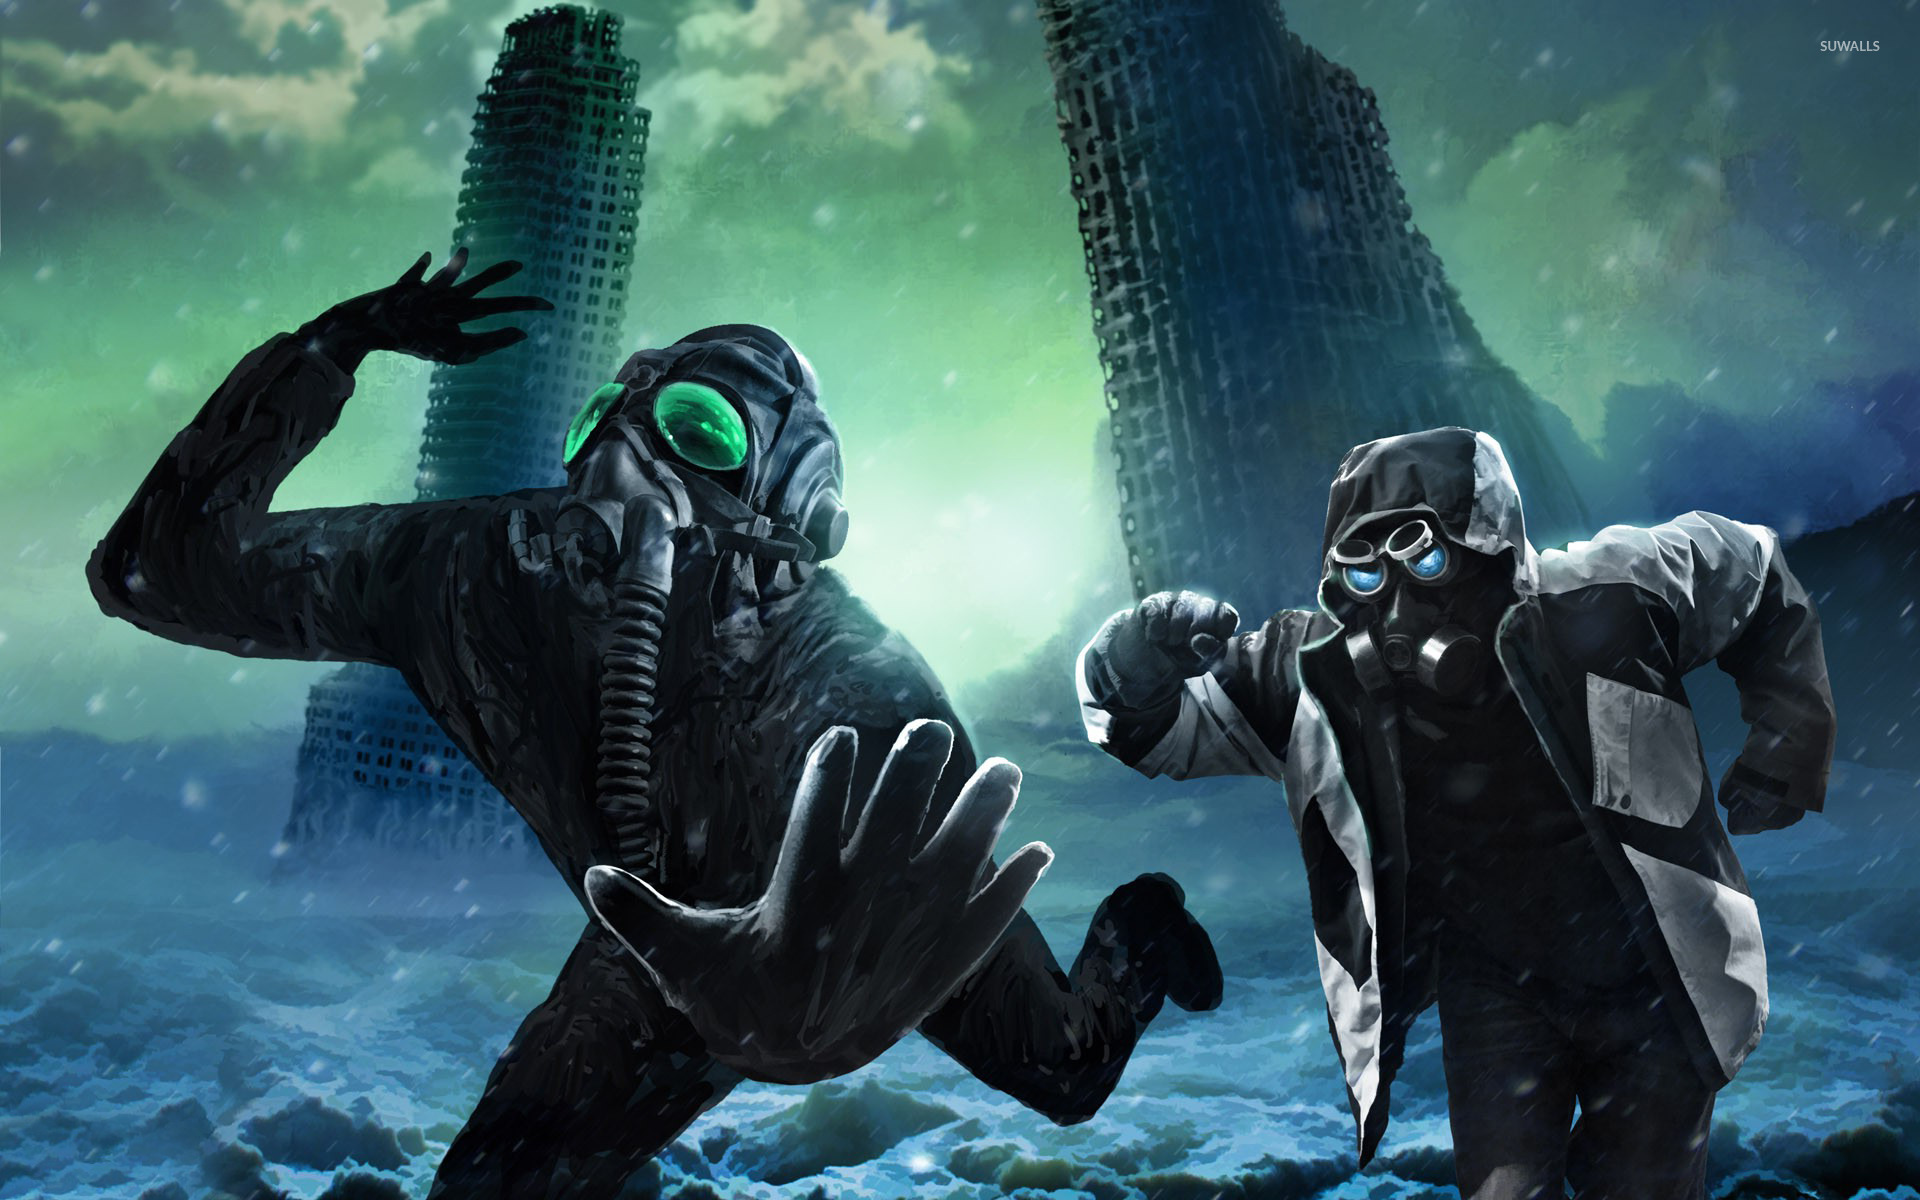 Running Away With Gas Masks Wallpaper Fantasy Wallpapers 17621